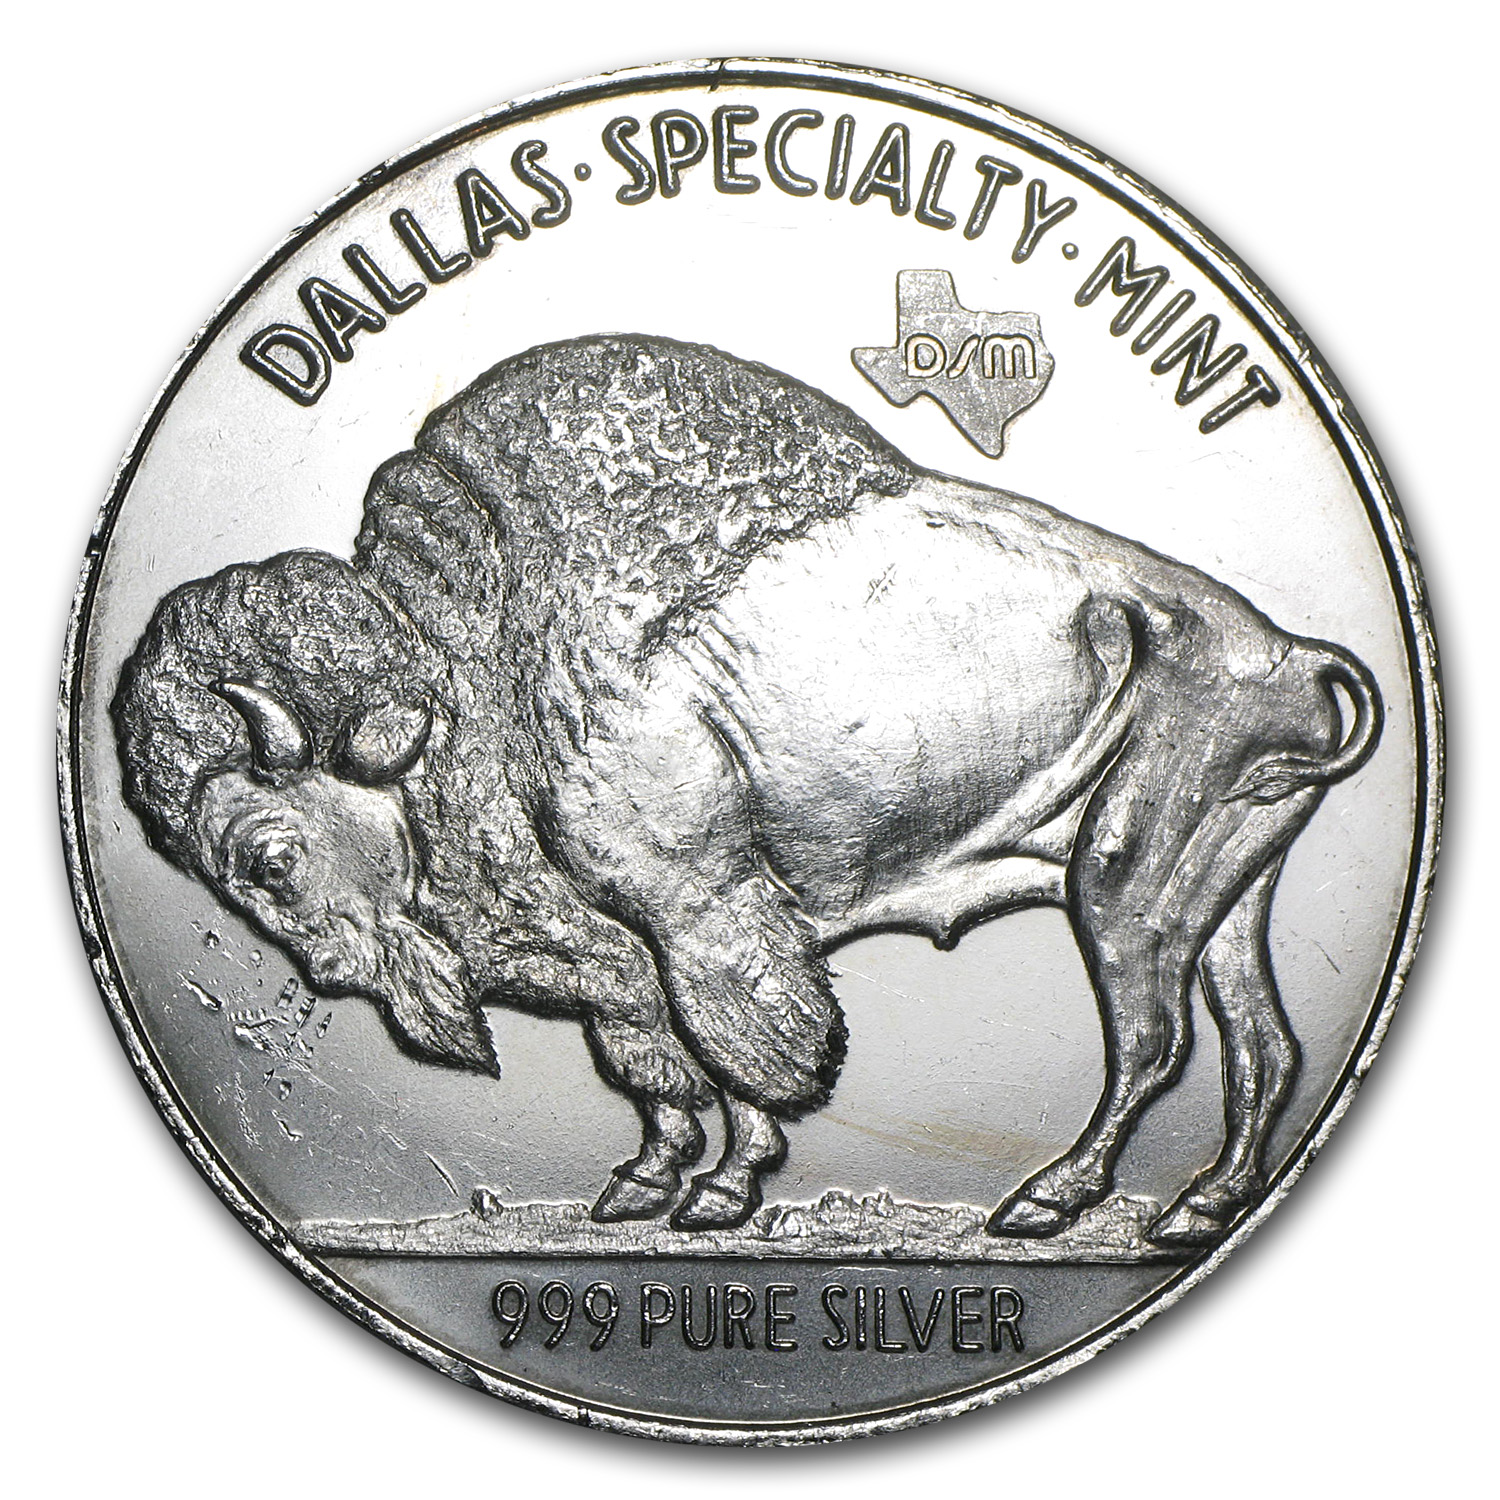 2 oz Silver Rounds - Buffalo Nickel (Dallas Specialty Mint)